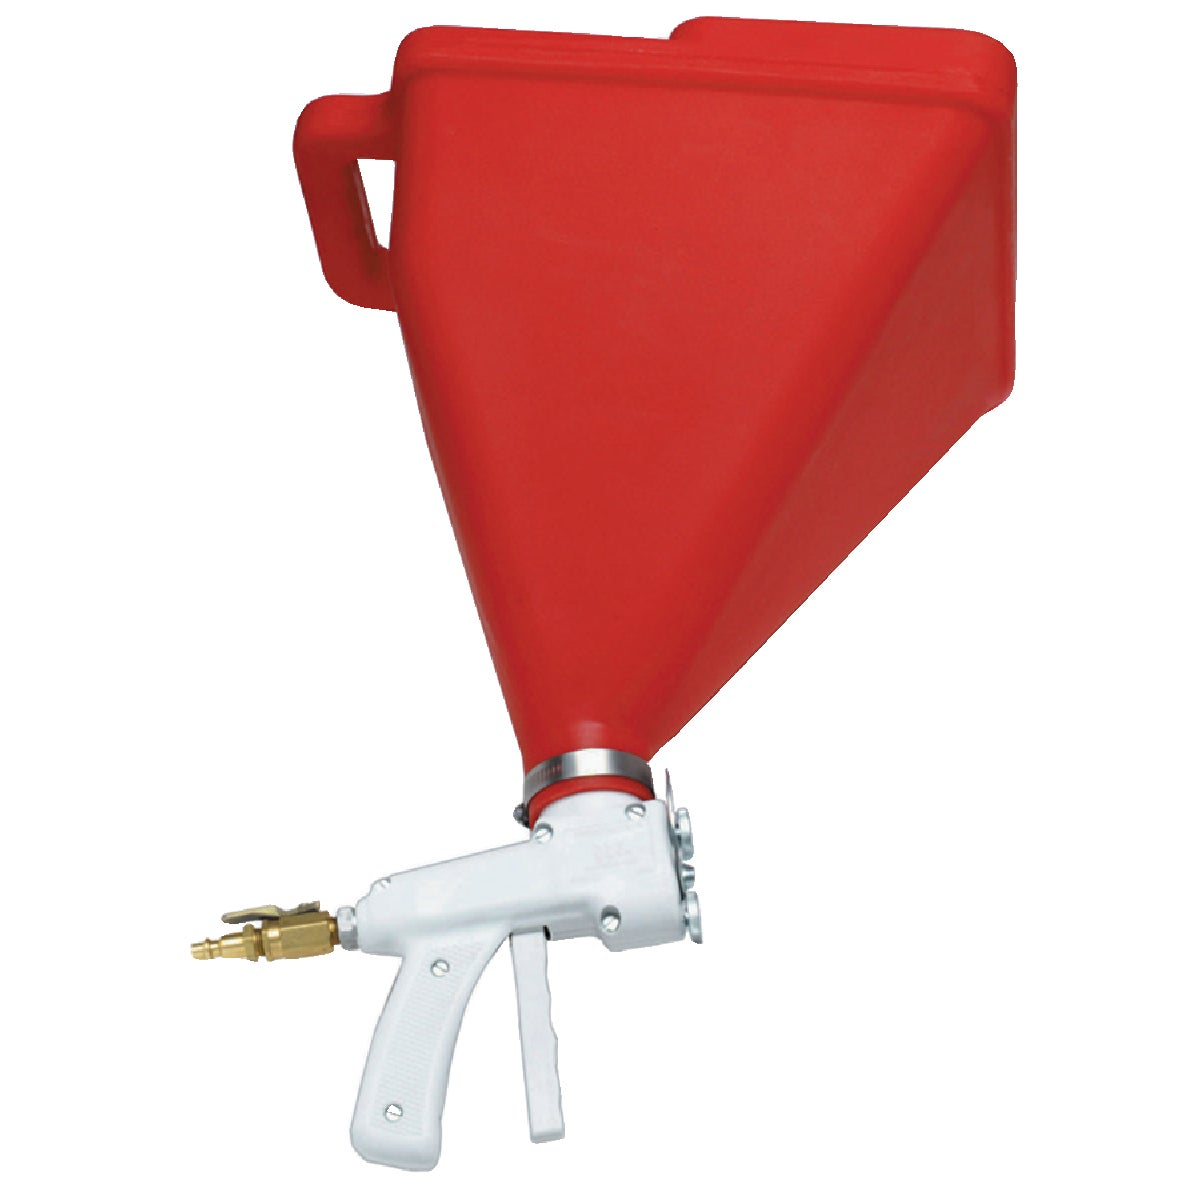 DRYWALL HOPPER GUN - 14582 by Marshalltown Trowel